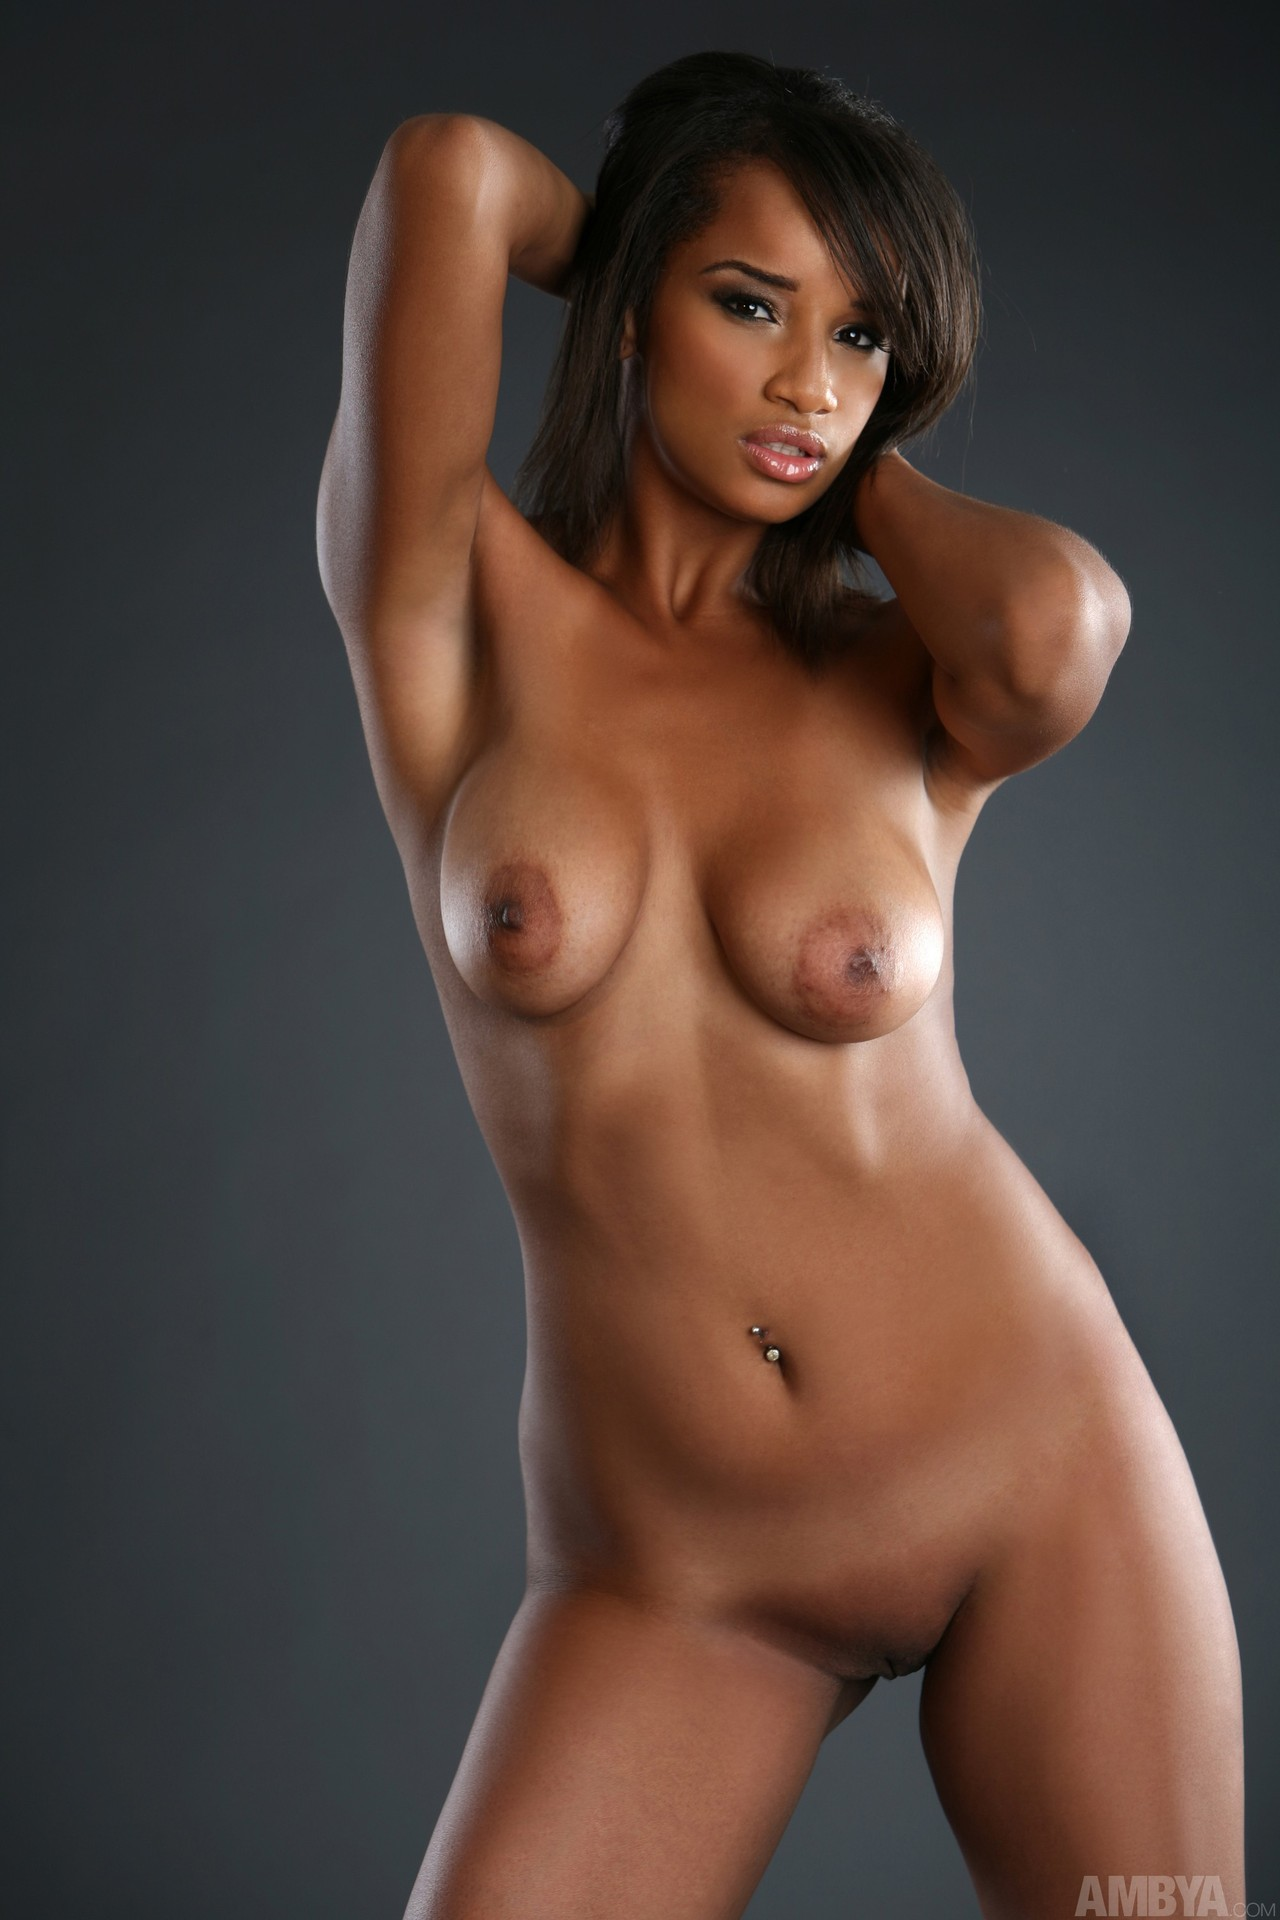 hot ebony girls naked